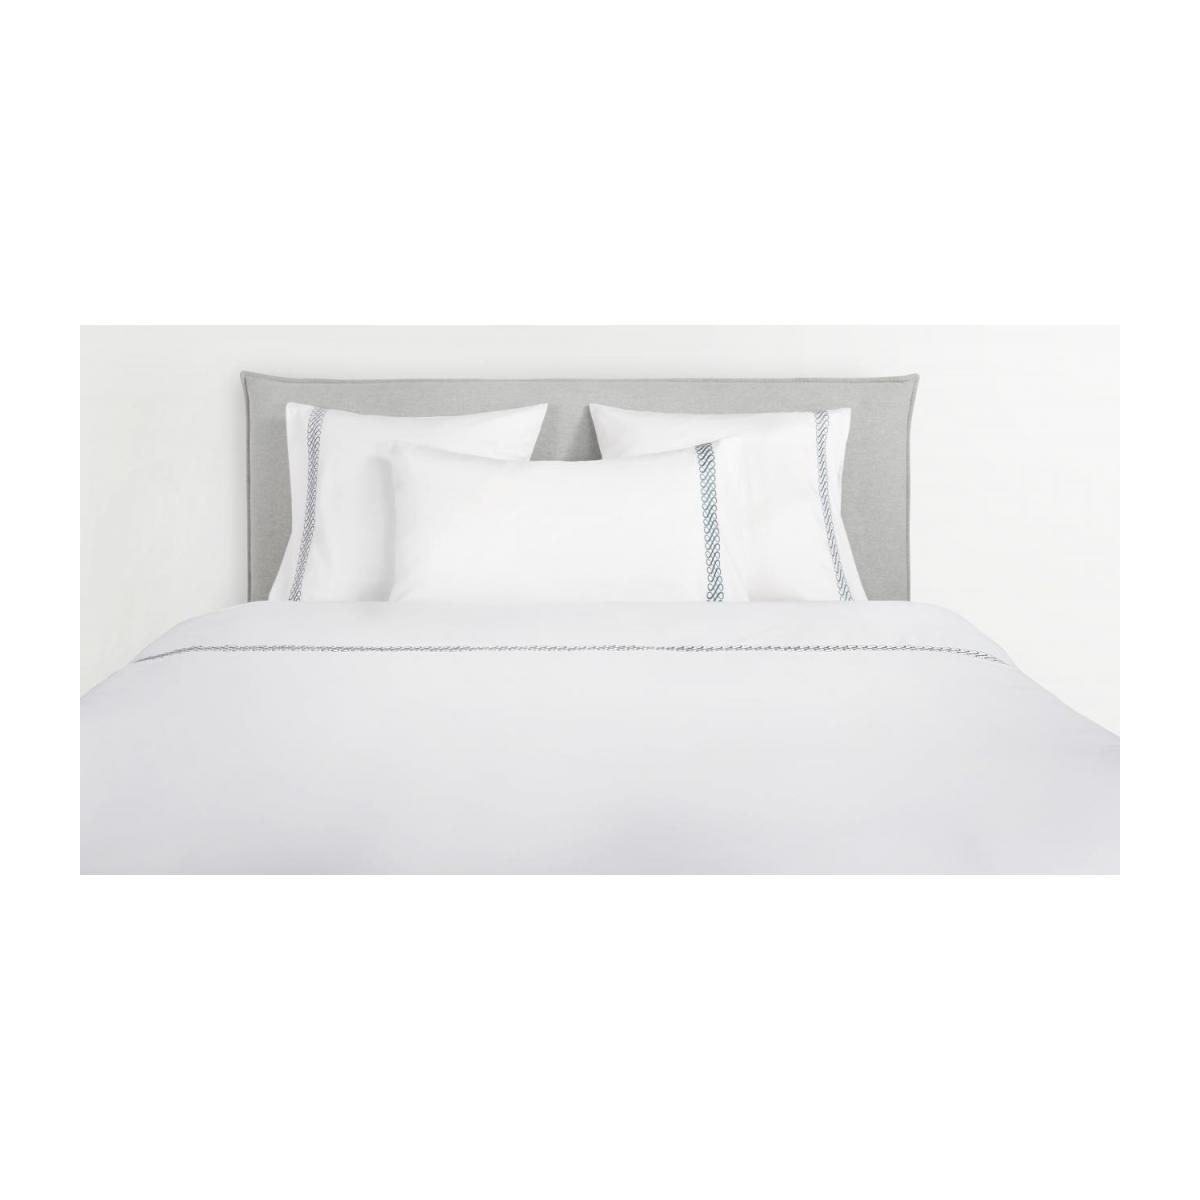 Embroidered duvet cover made of cotton 240x220, white n°1